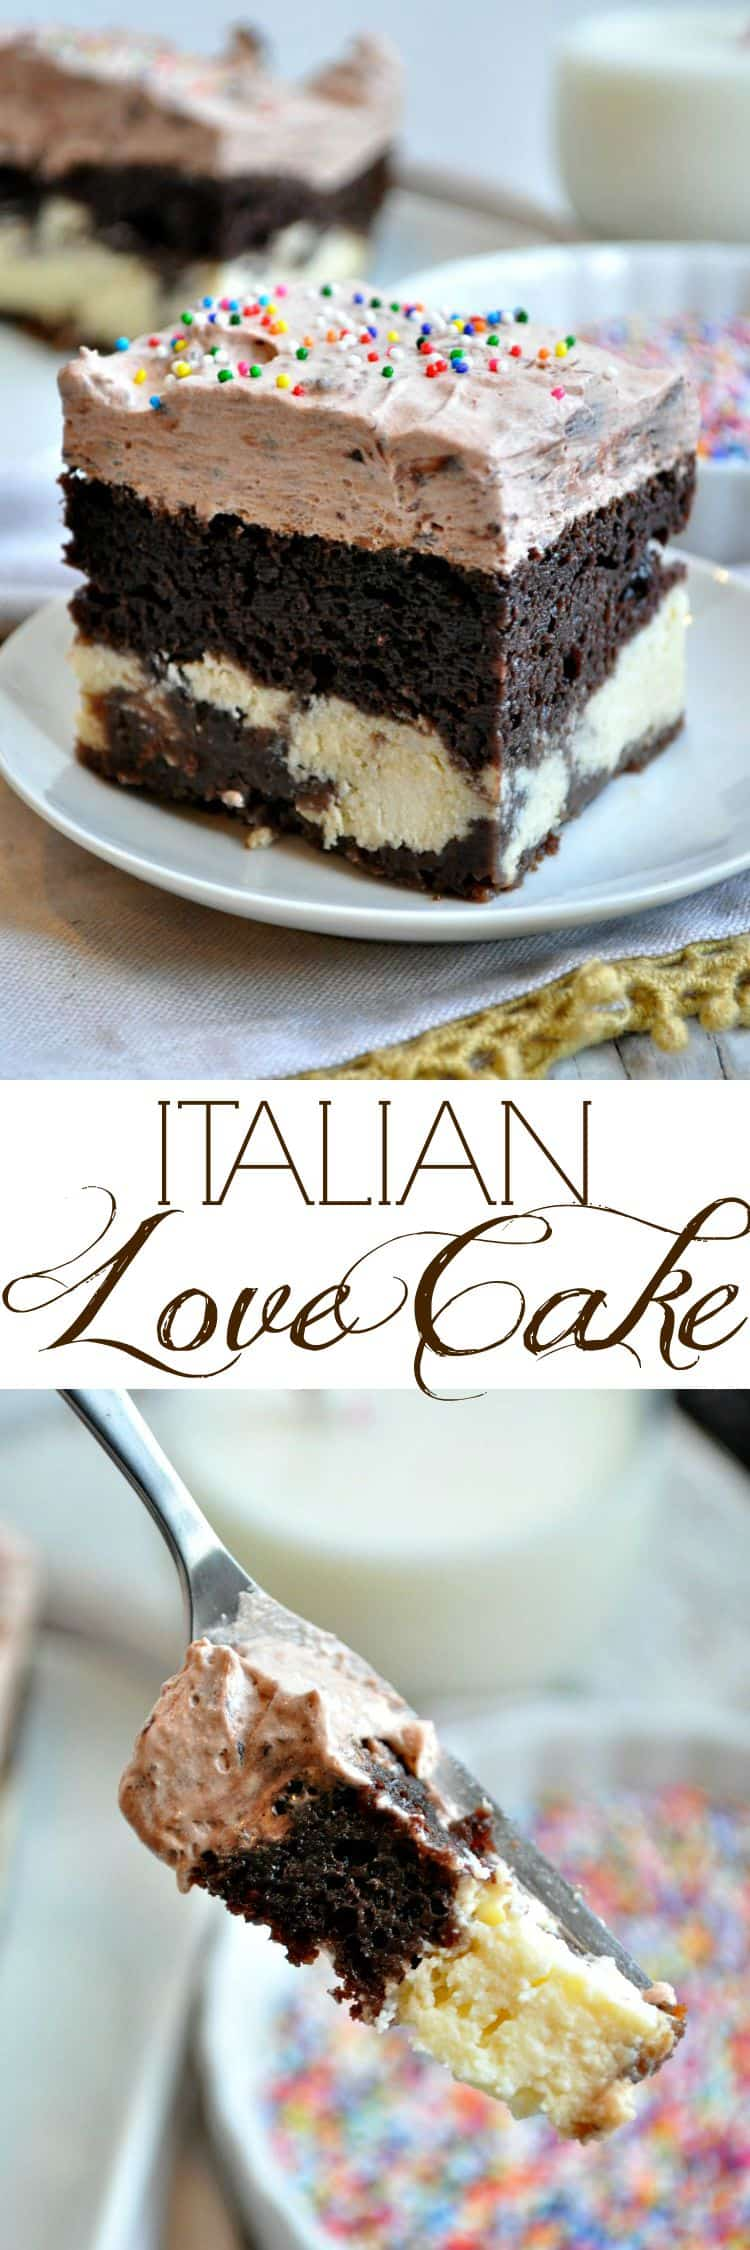 Easy Chocolate Italian Love Cake The Seasoned Mom